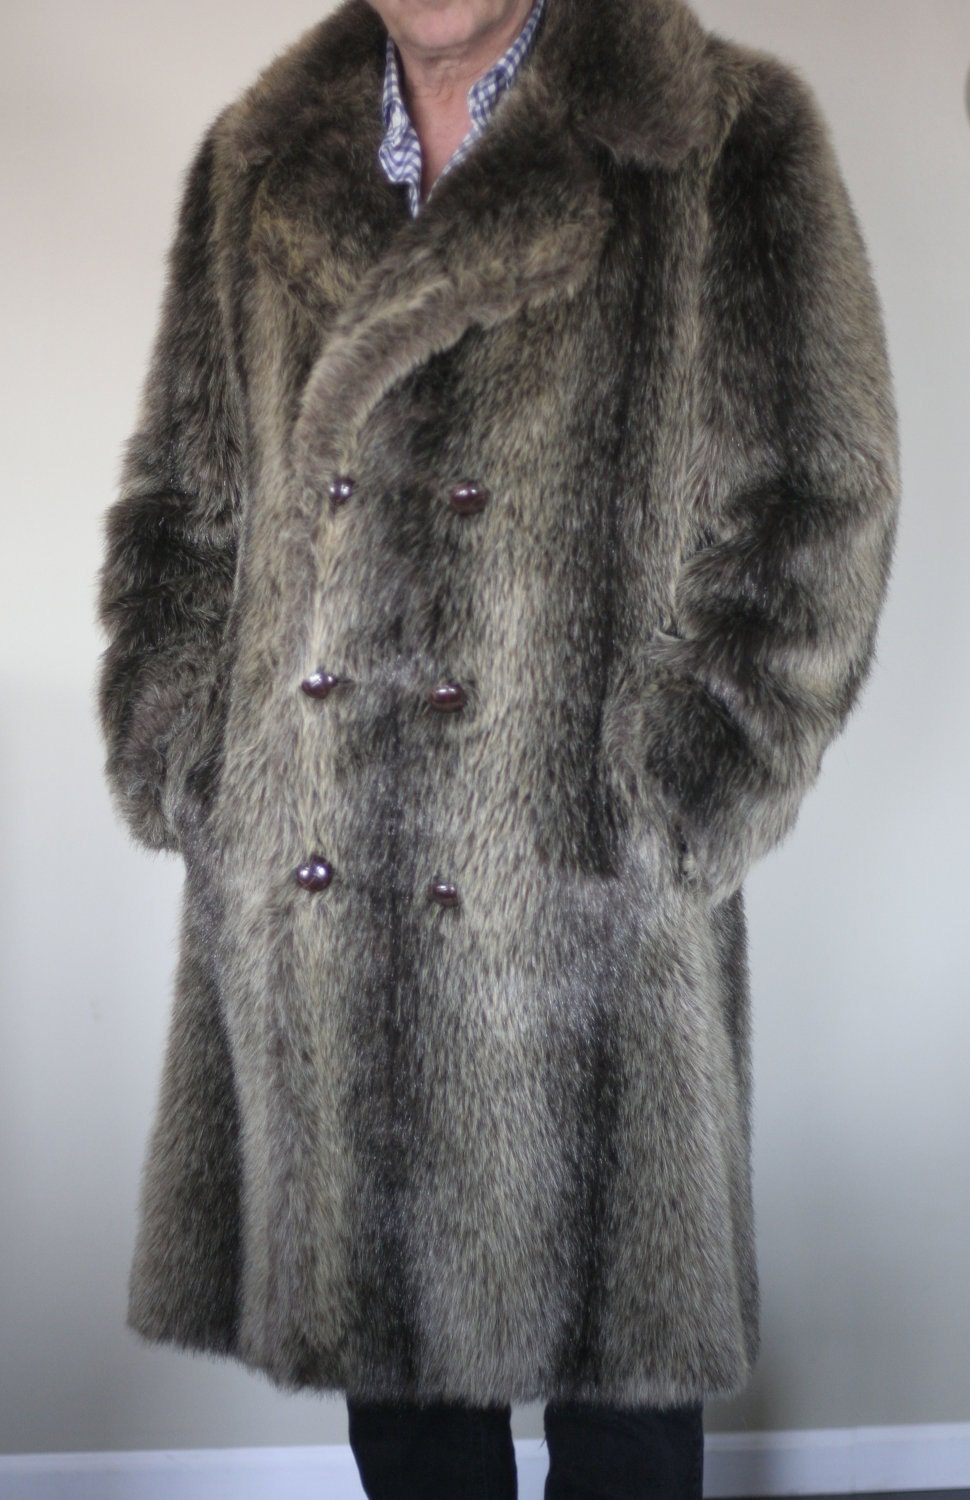 Faux Fur Coats For Men - Tradingbasis